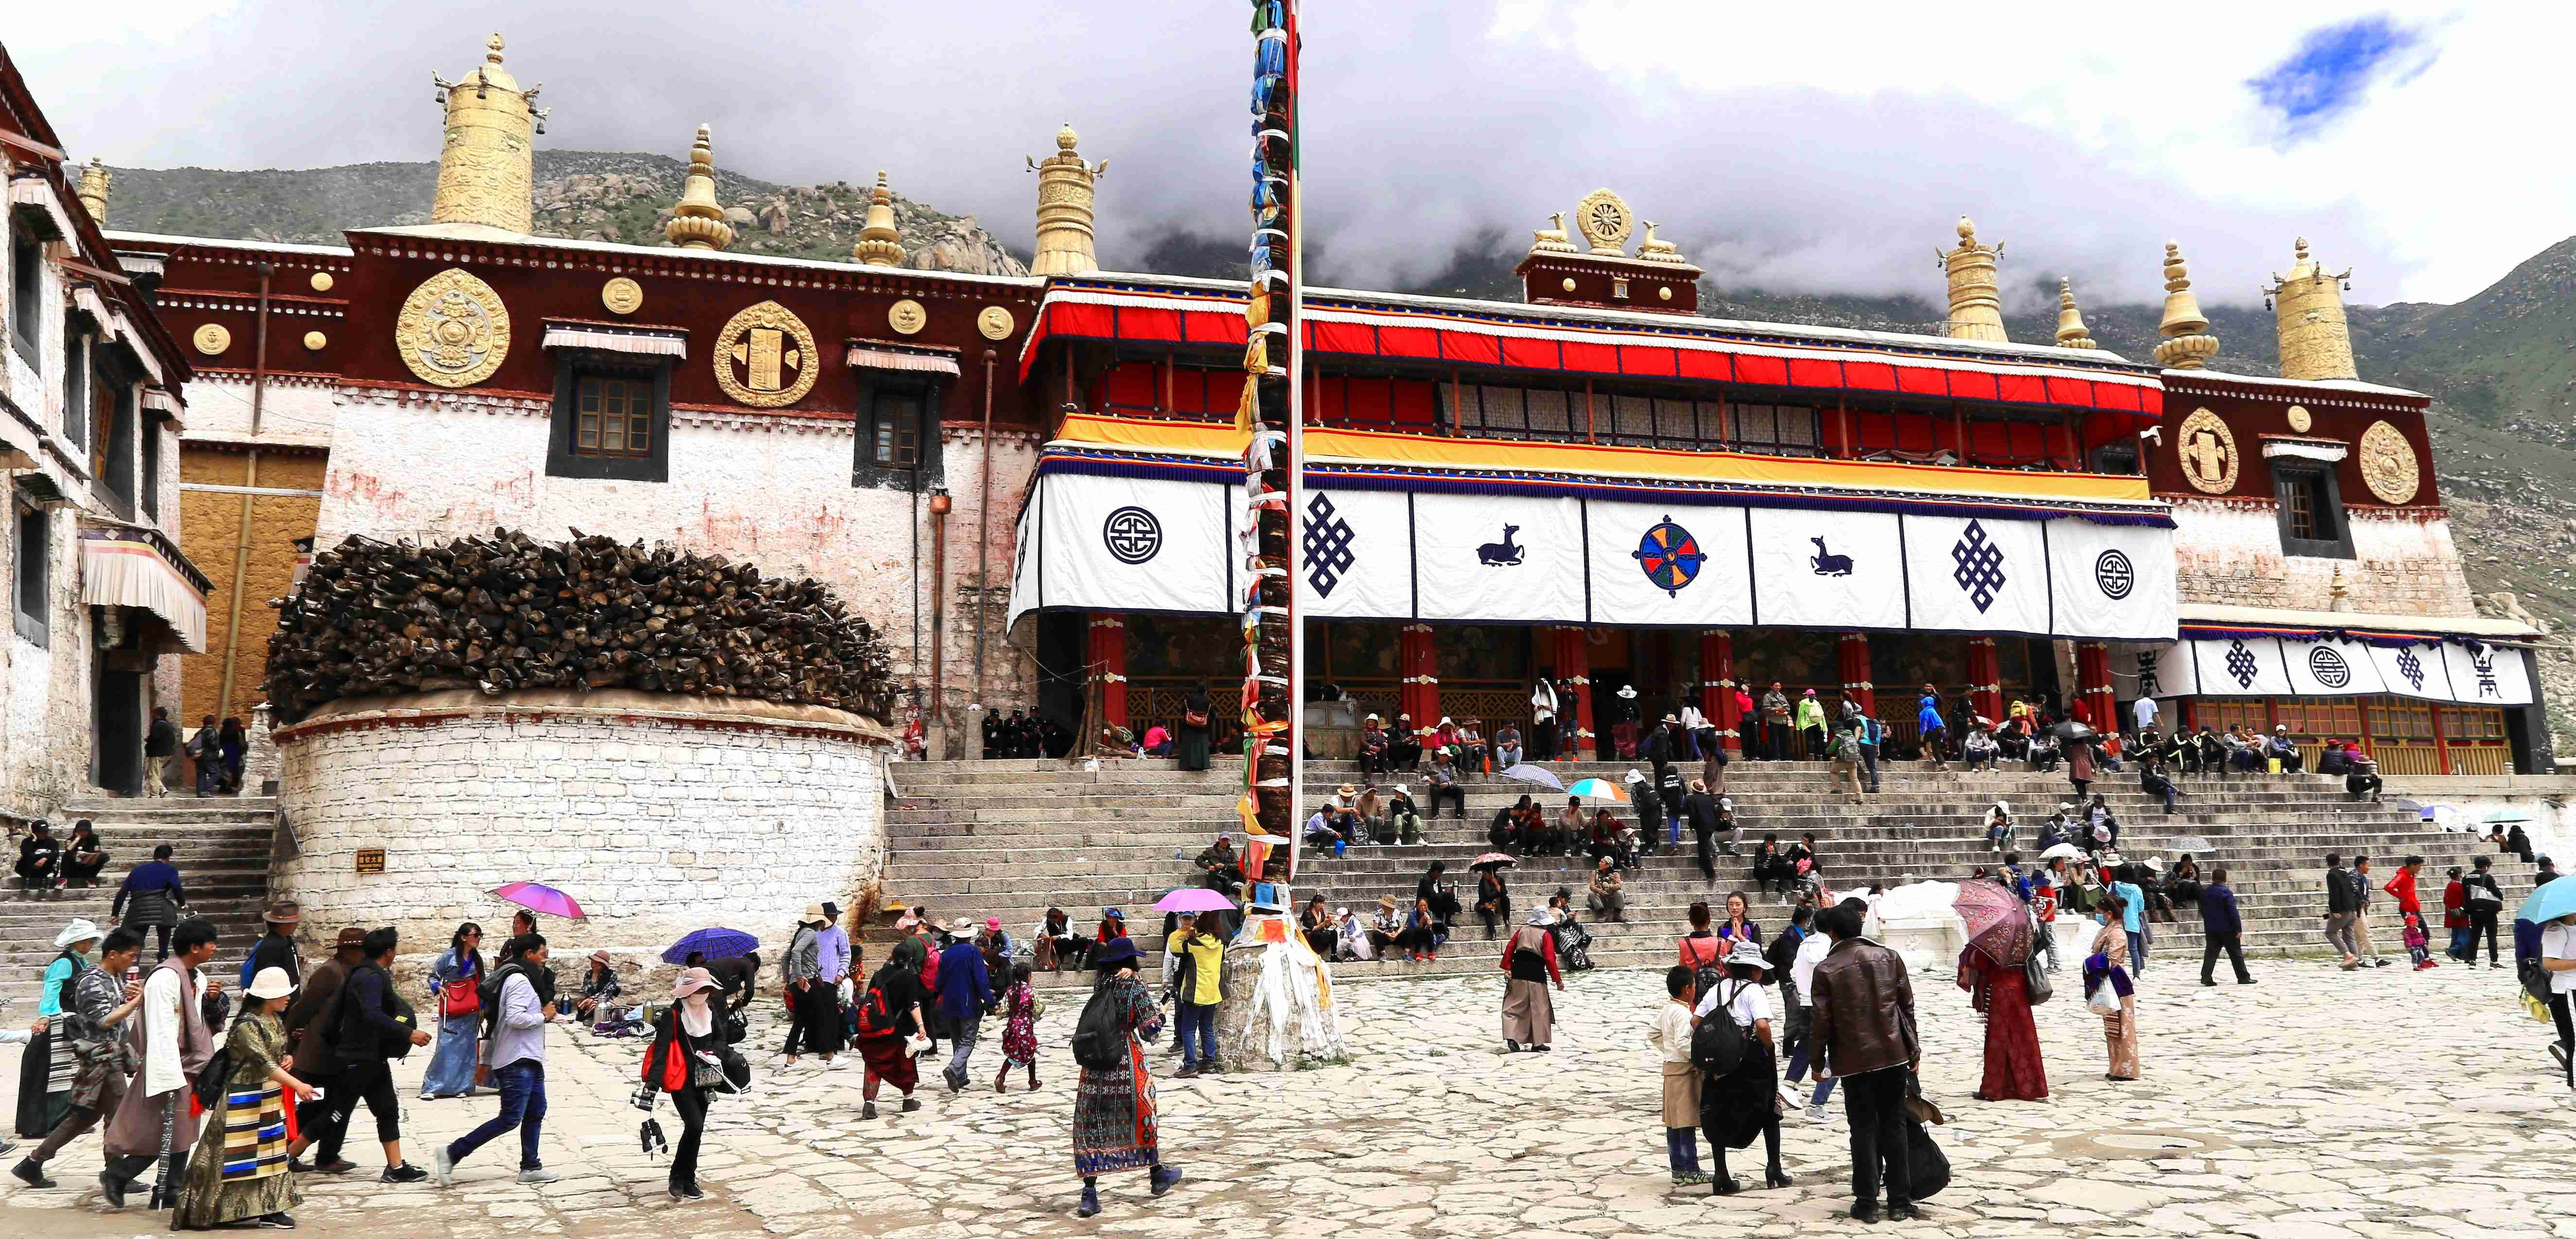 Drepung monastery during Shoton Festival